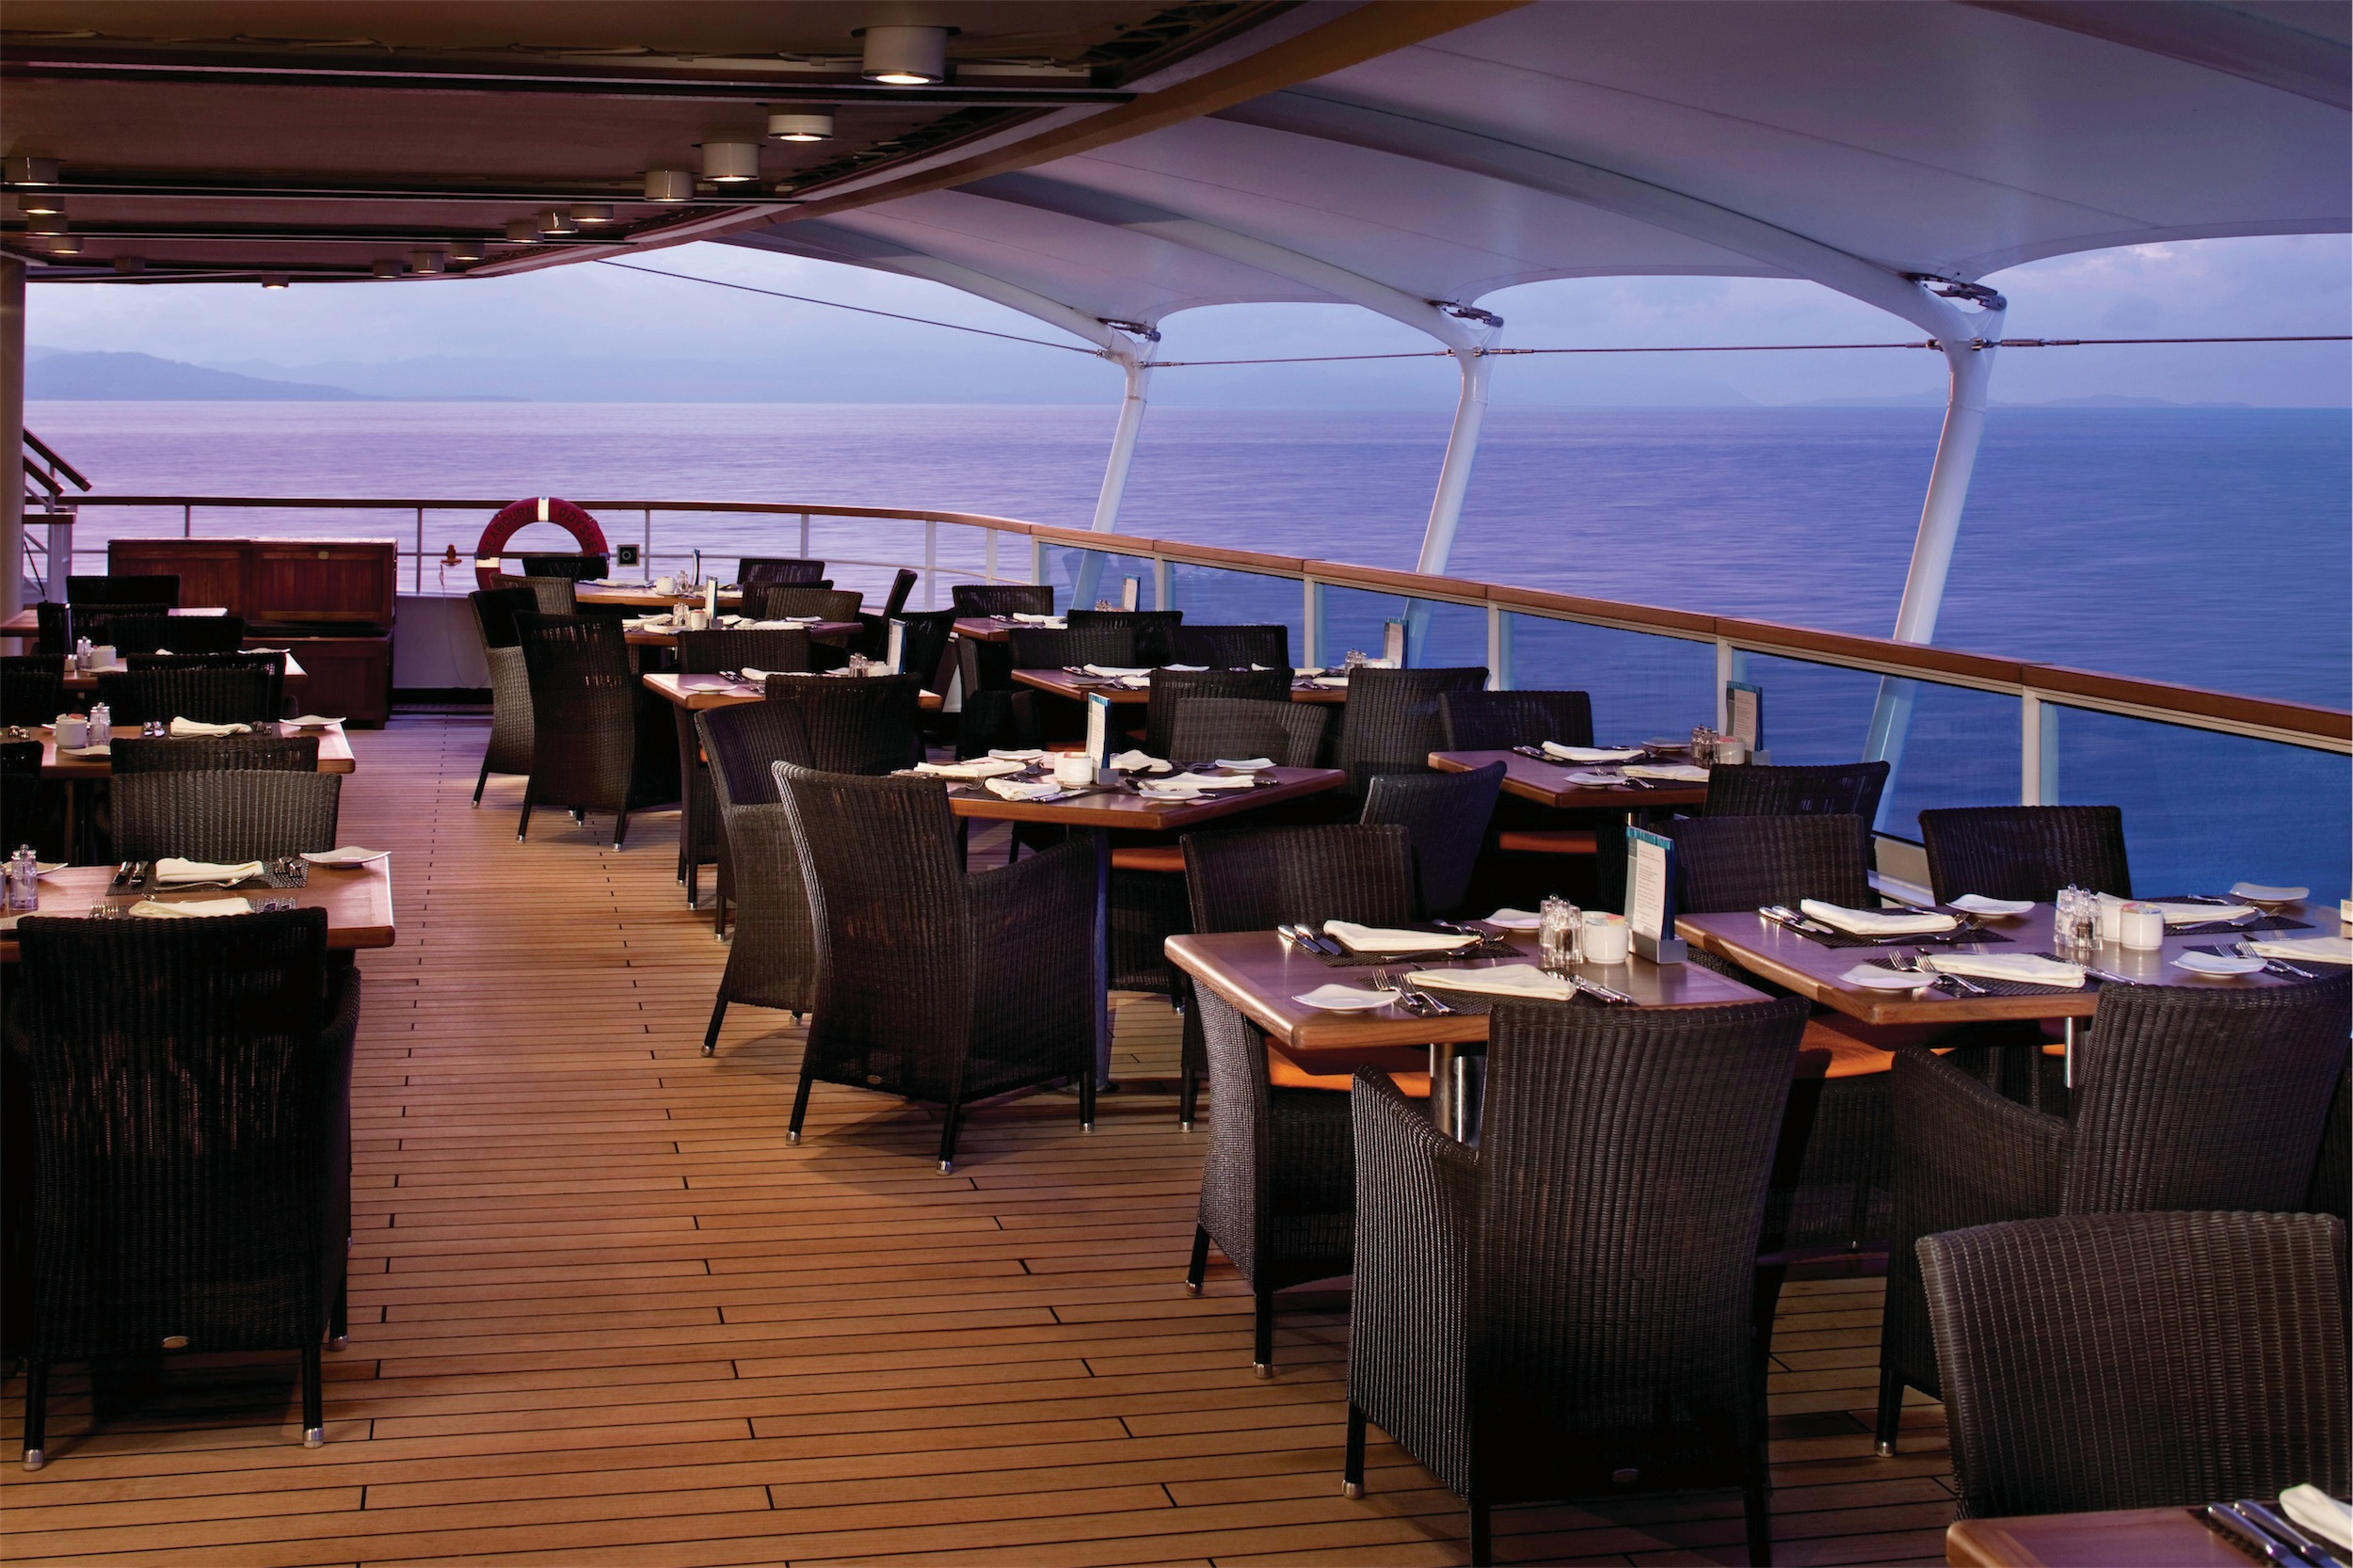 Seabourn Odyssey Class Interior The Colonnade Outside.jpg